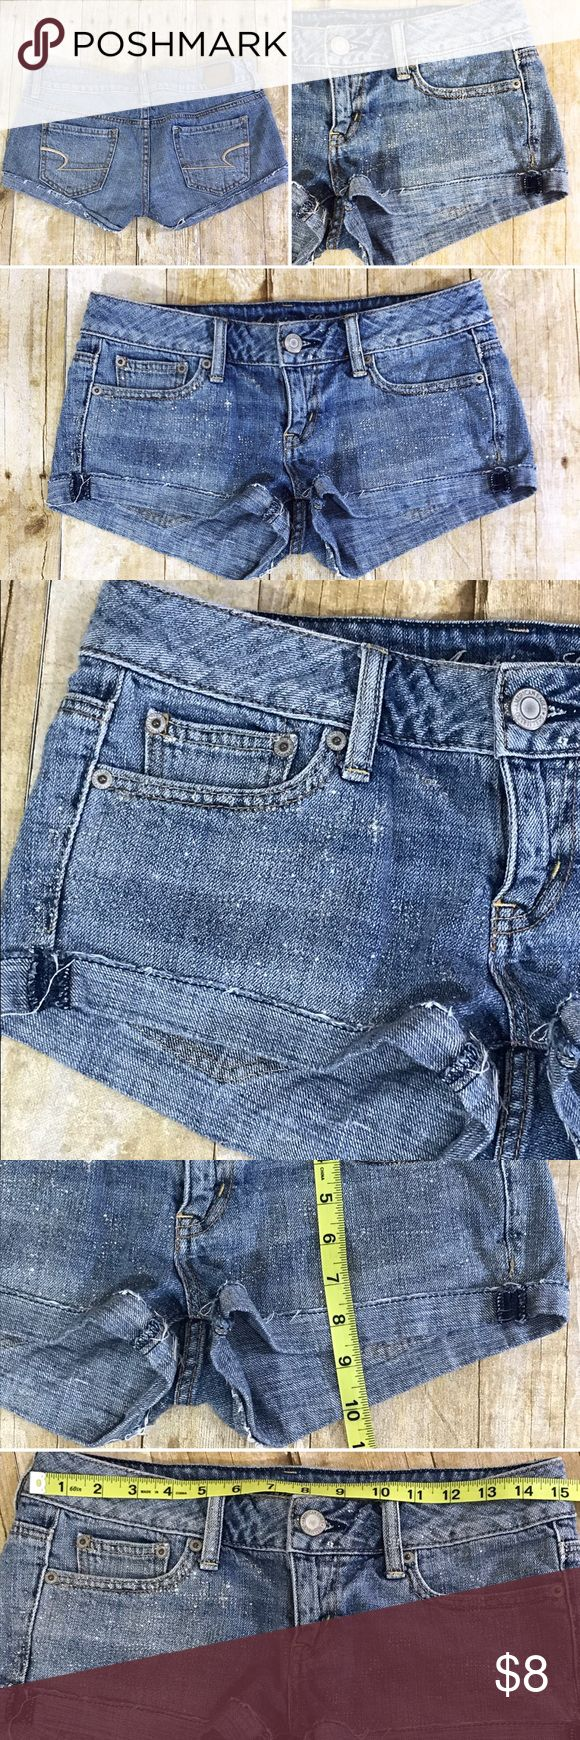 American Eagle Blue Denim Glitter Sparkle Shorts American Eagle Women's Girls Blue Size 2 Glitter Sparkle Shorties Denim Short Shorts Low Rise  Very Good Used Preloved Condition - No visible rips, stains or tears. 100% Cotton American Eagle Outfitters Shorts Jean Shorts